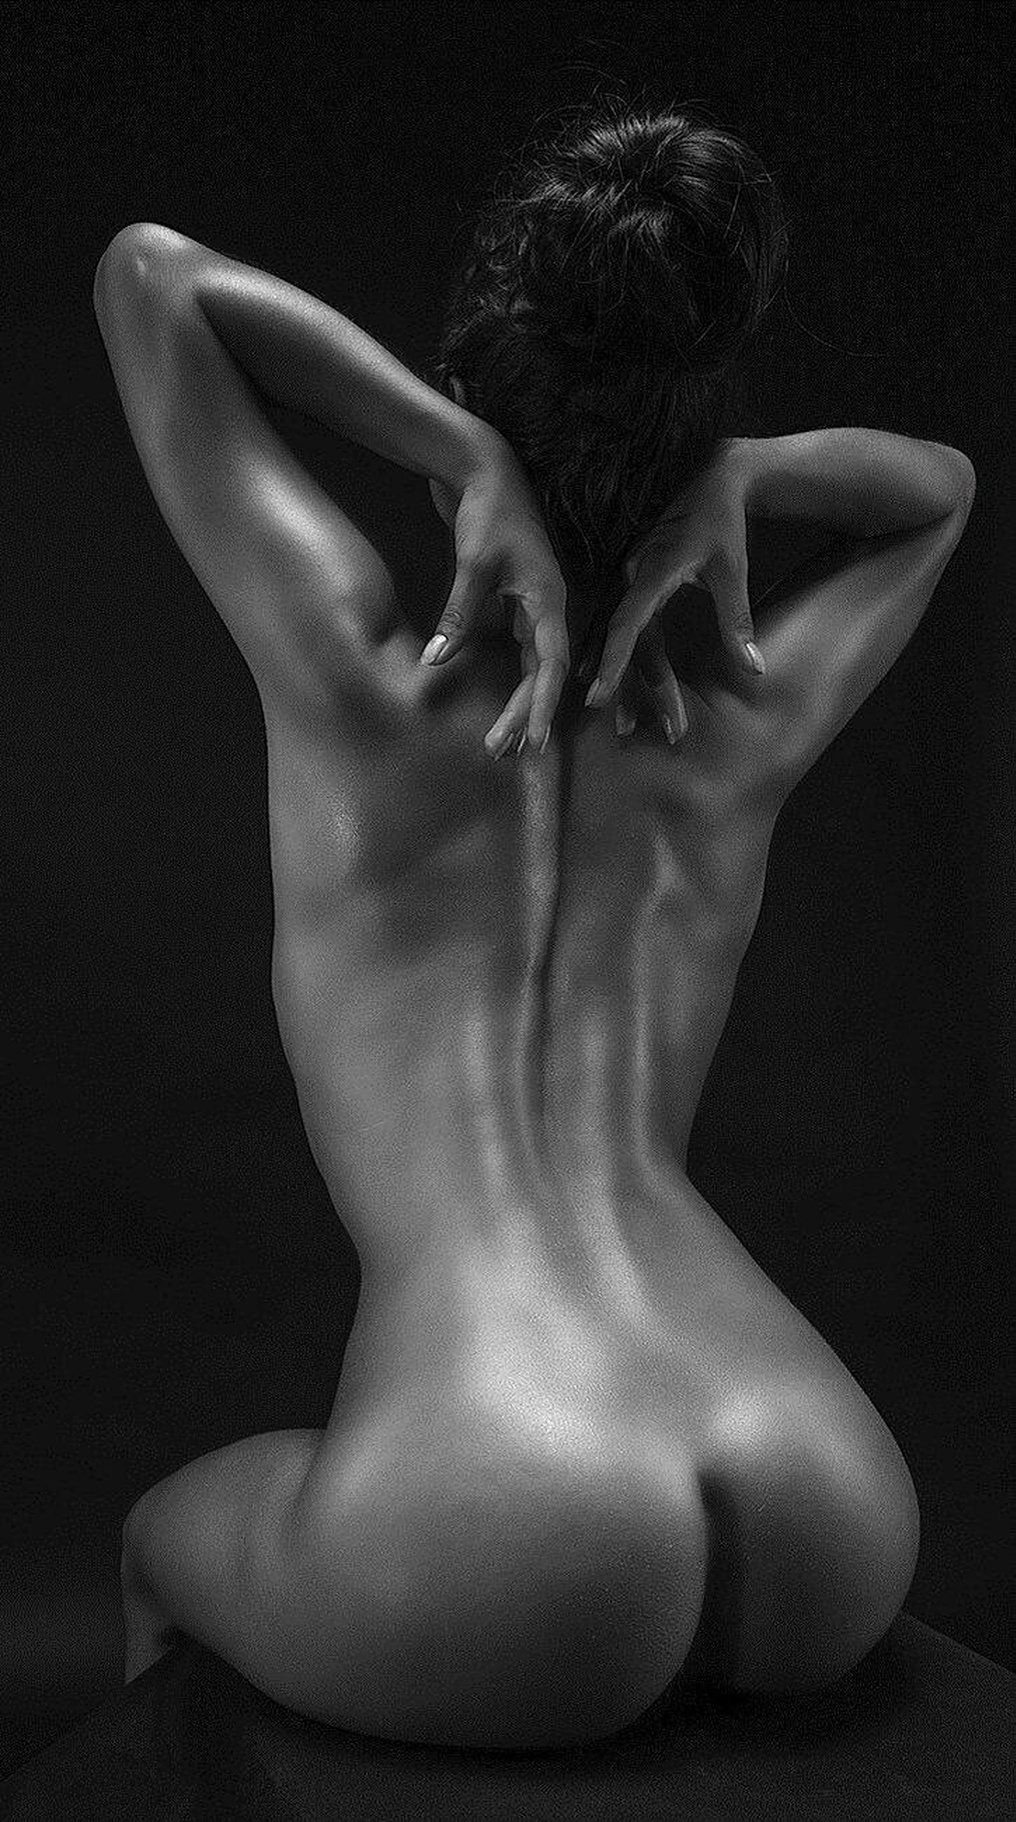 Nsfw stunning black and white fine